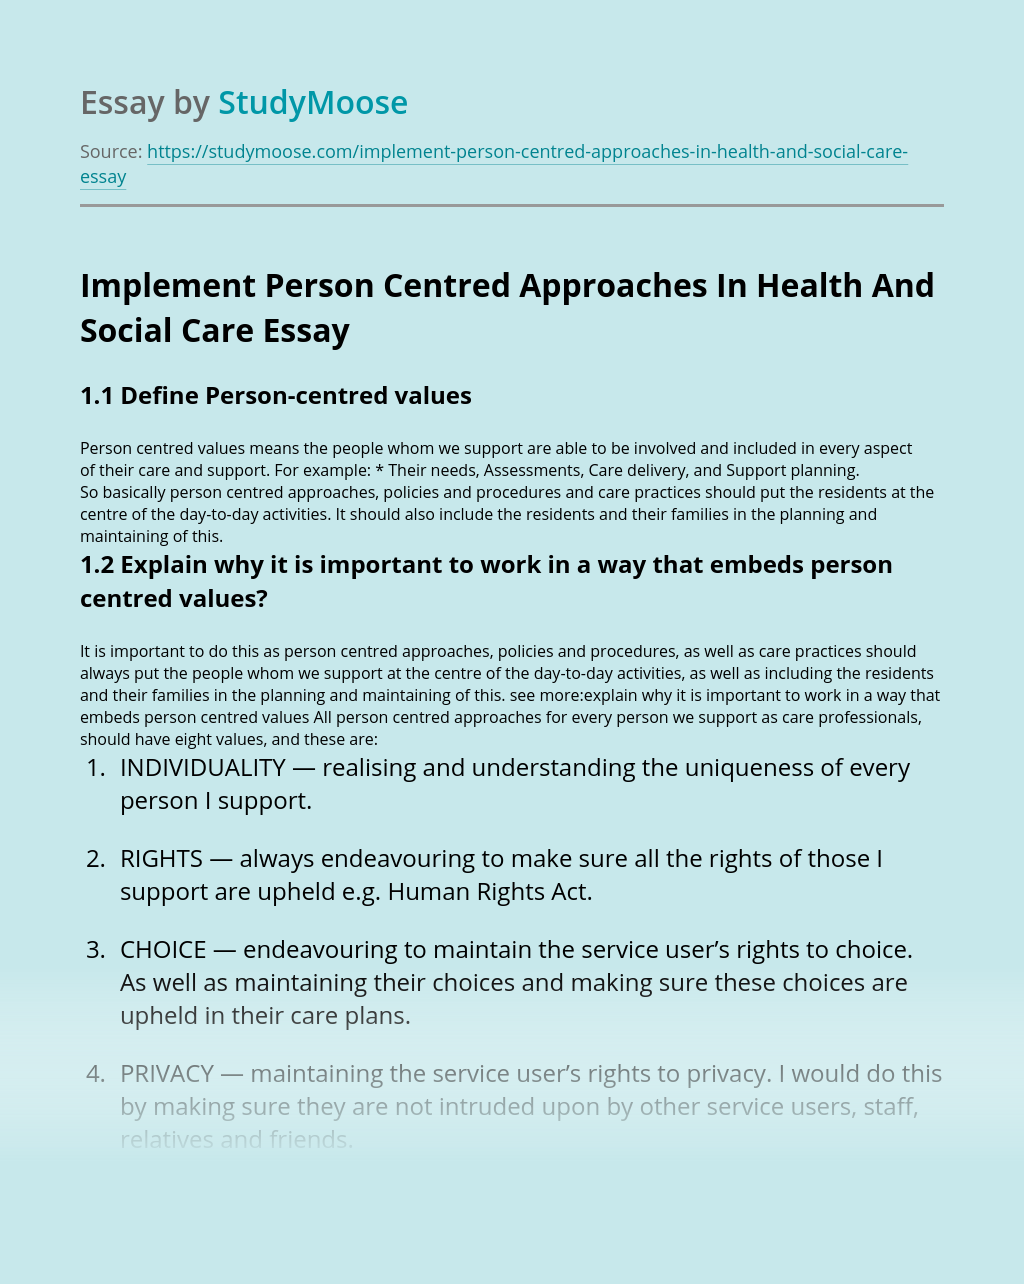 Implement Person Centred Approaches In Health And Social Care